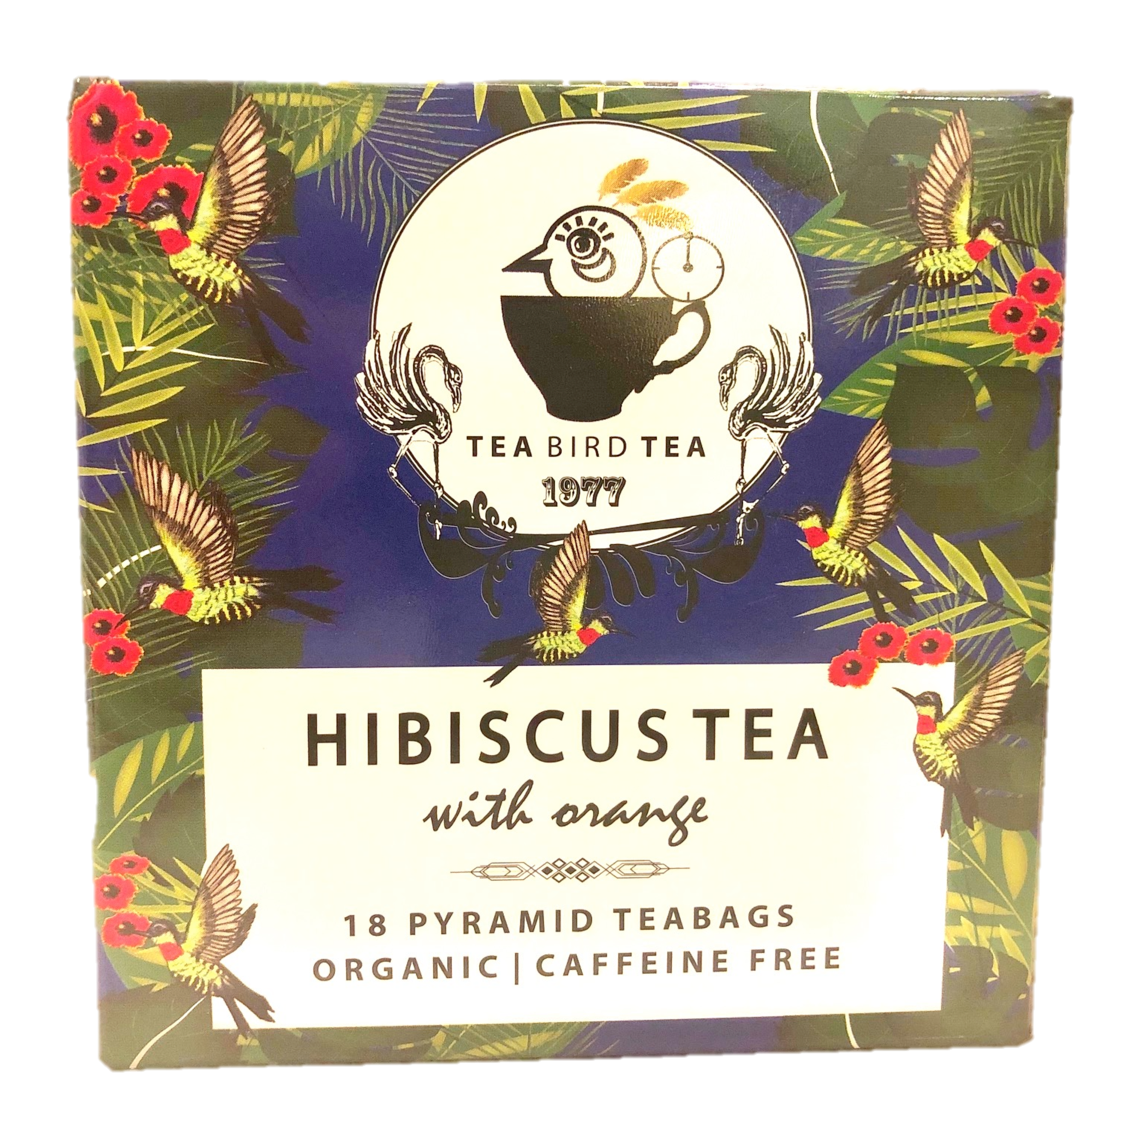 Tea Bird Tea Organic Hibiscus Tea Loose Blends 40g